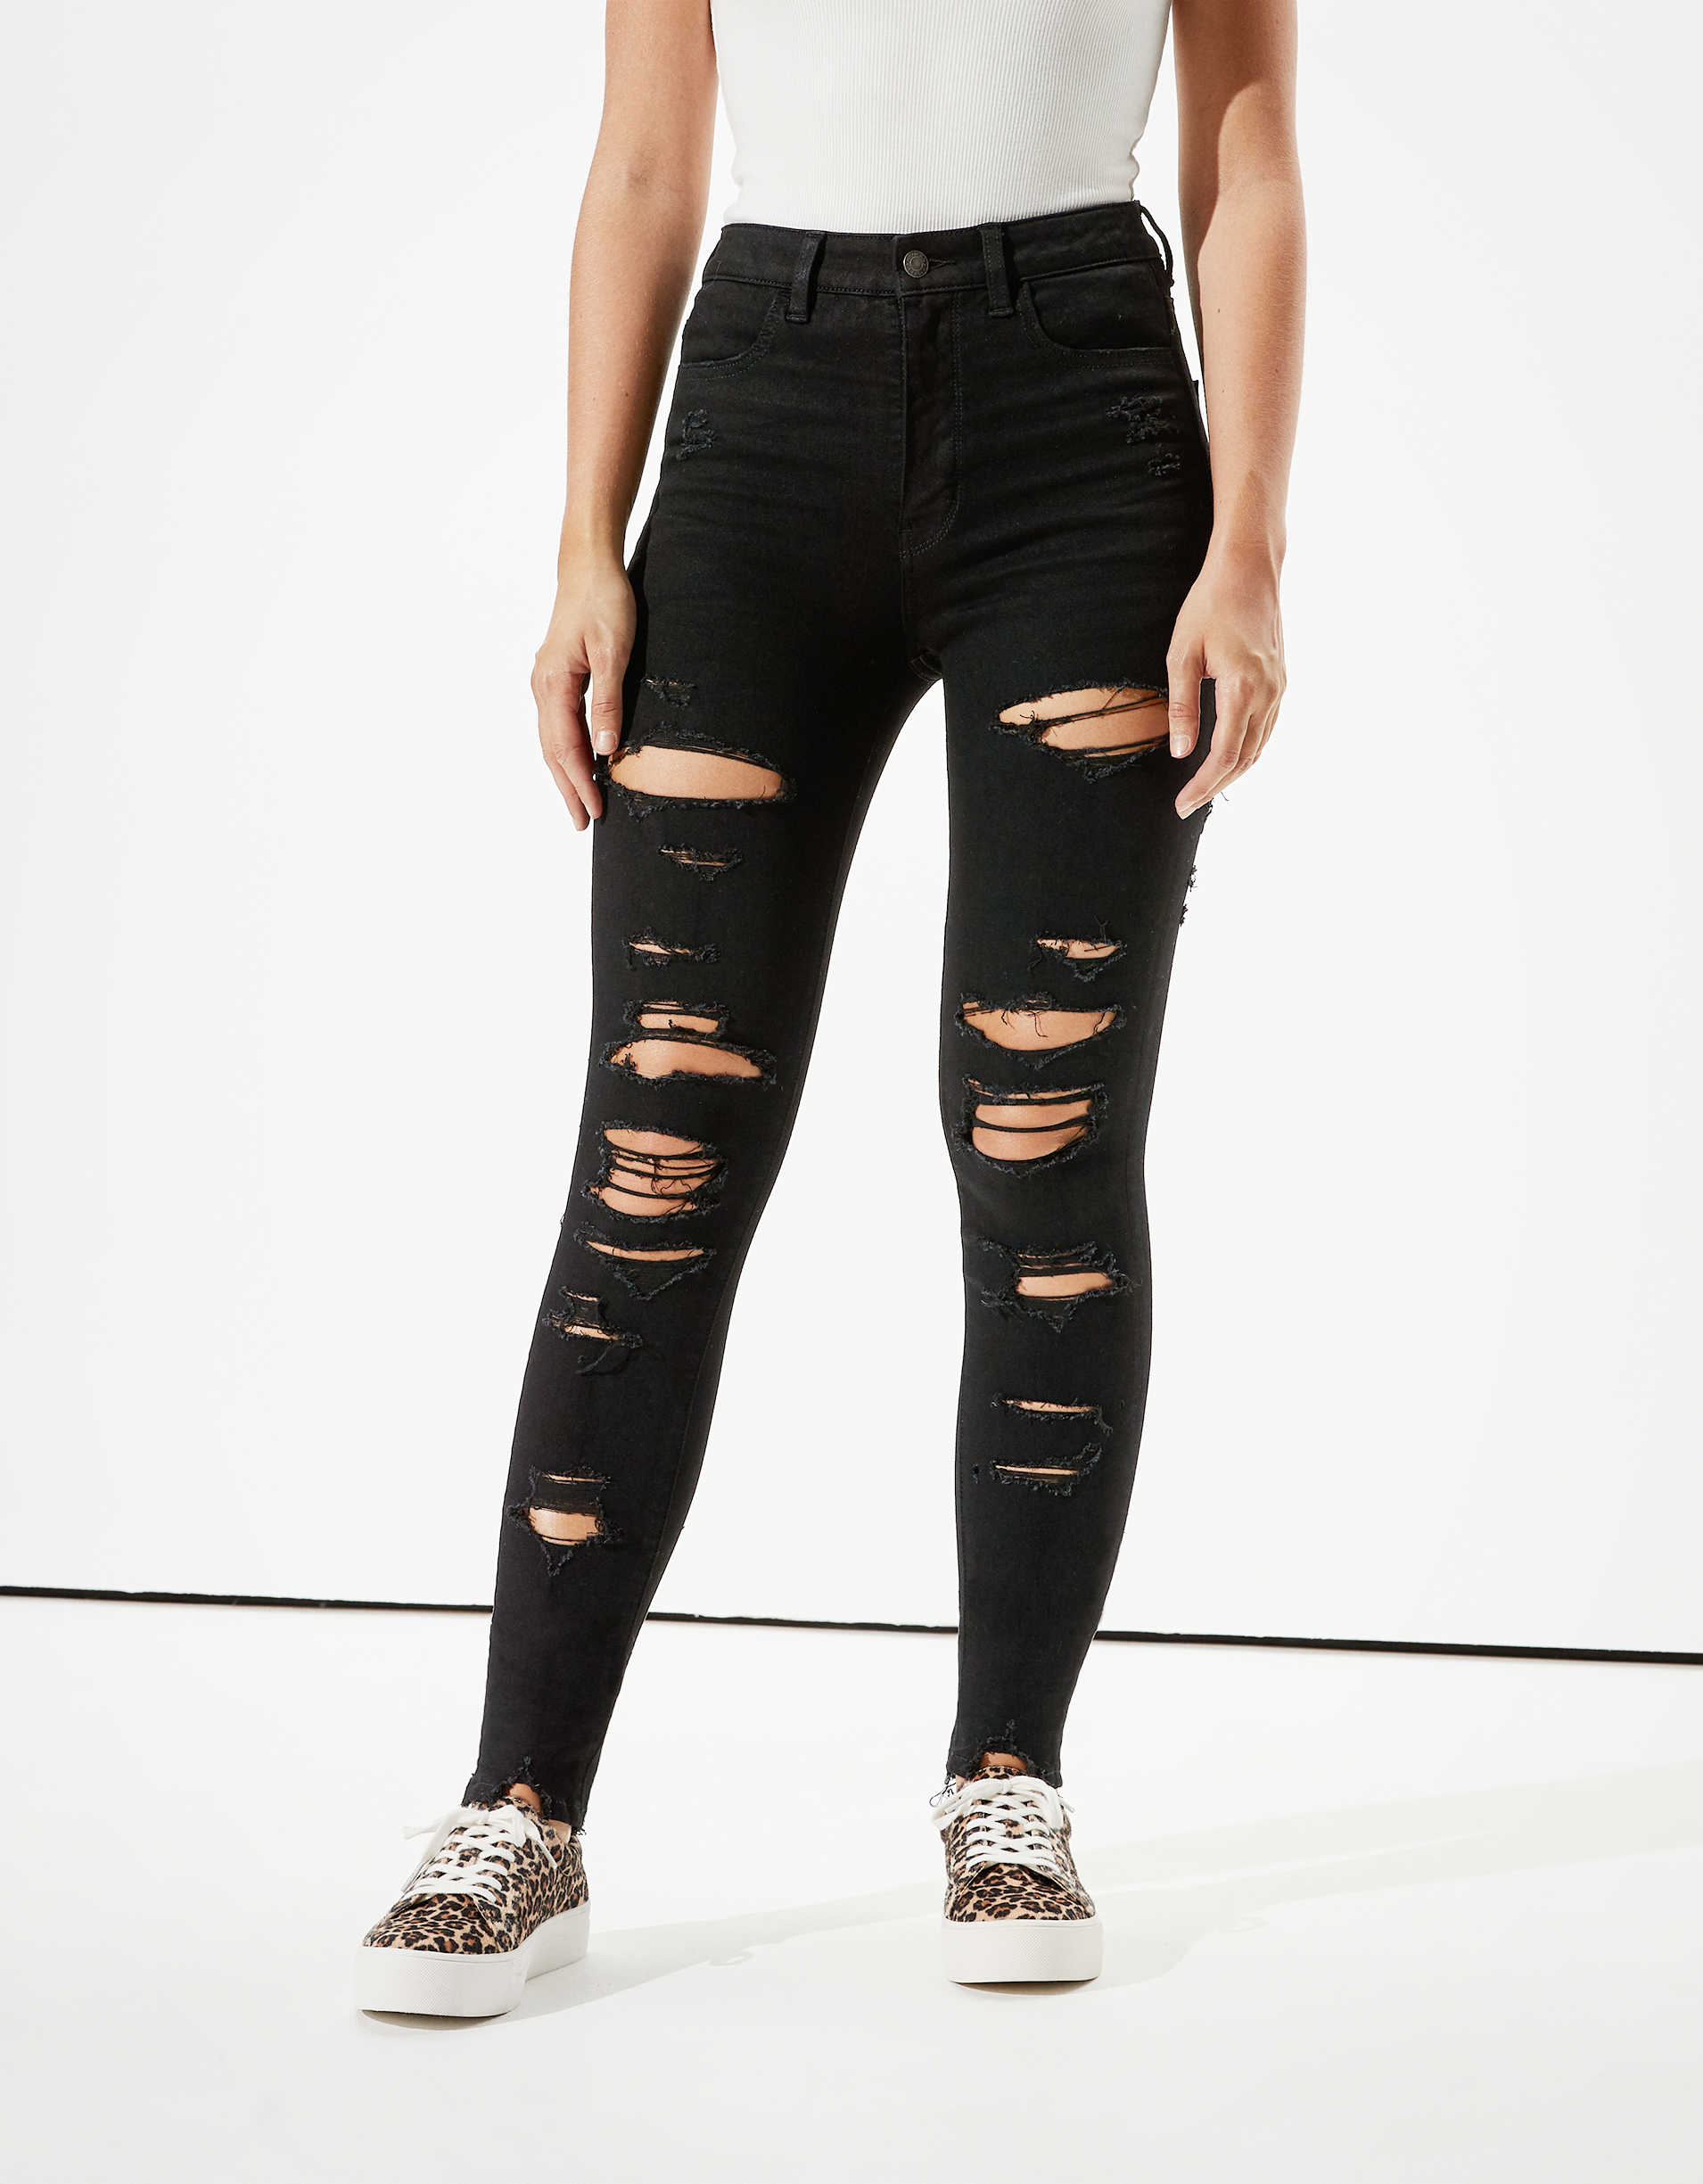 AE The Dream Jean Highest Waist Jegging